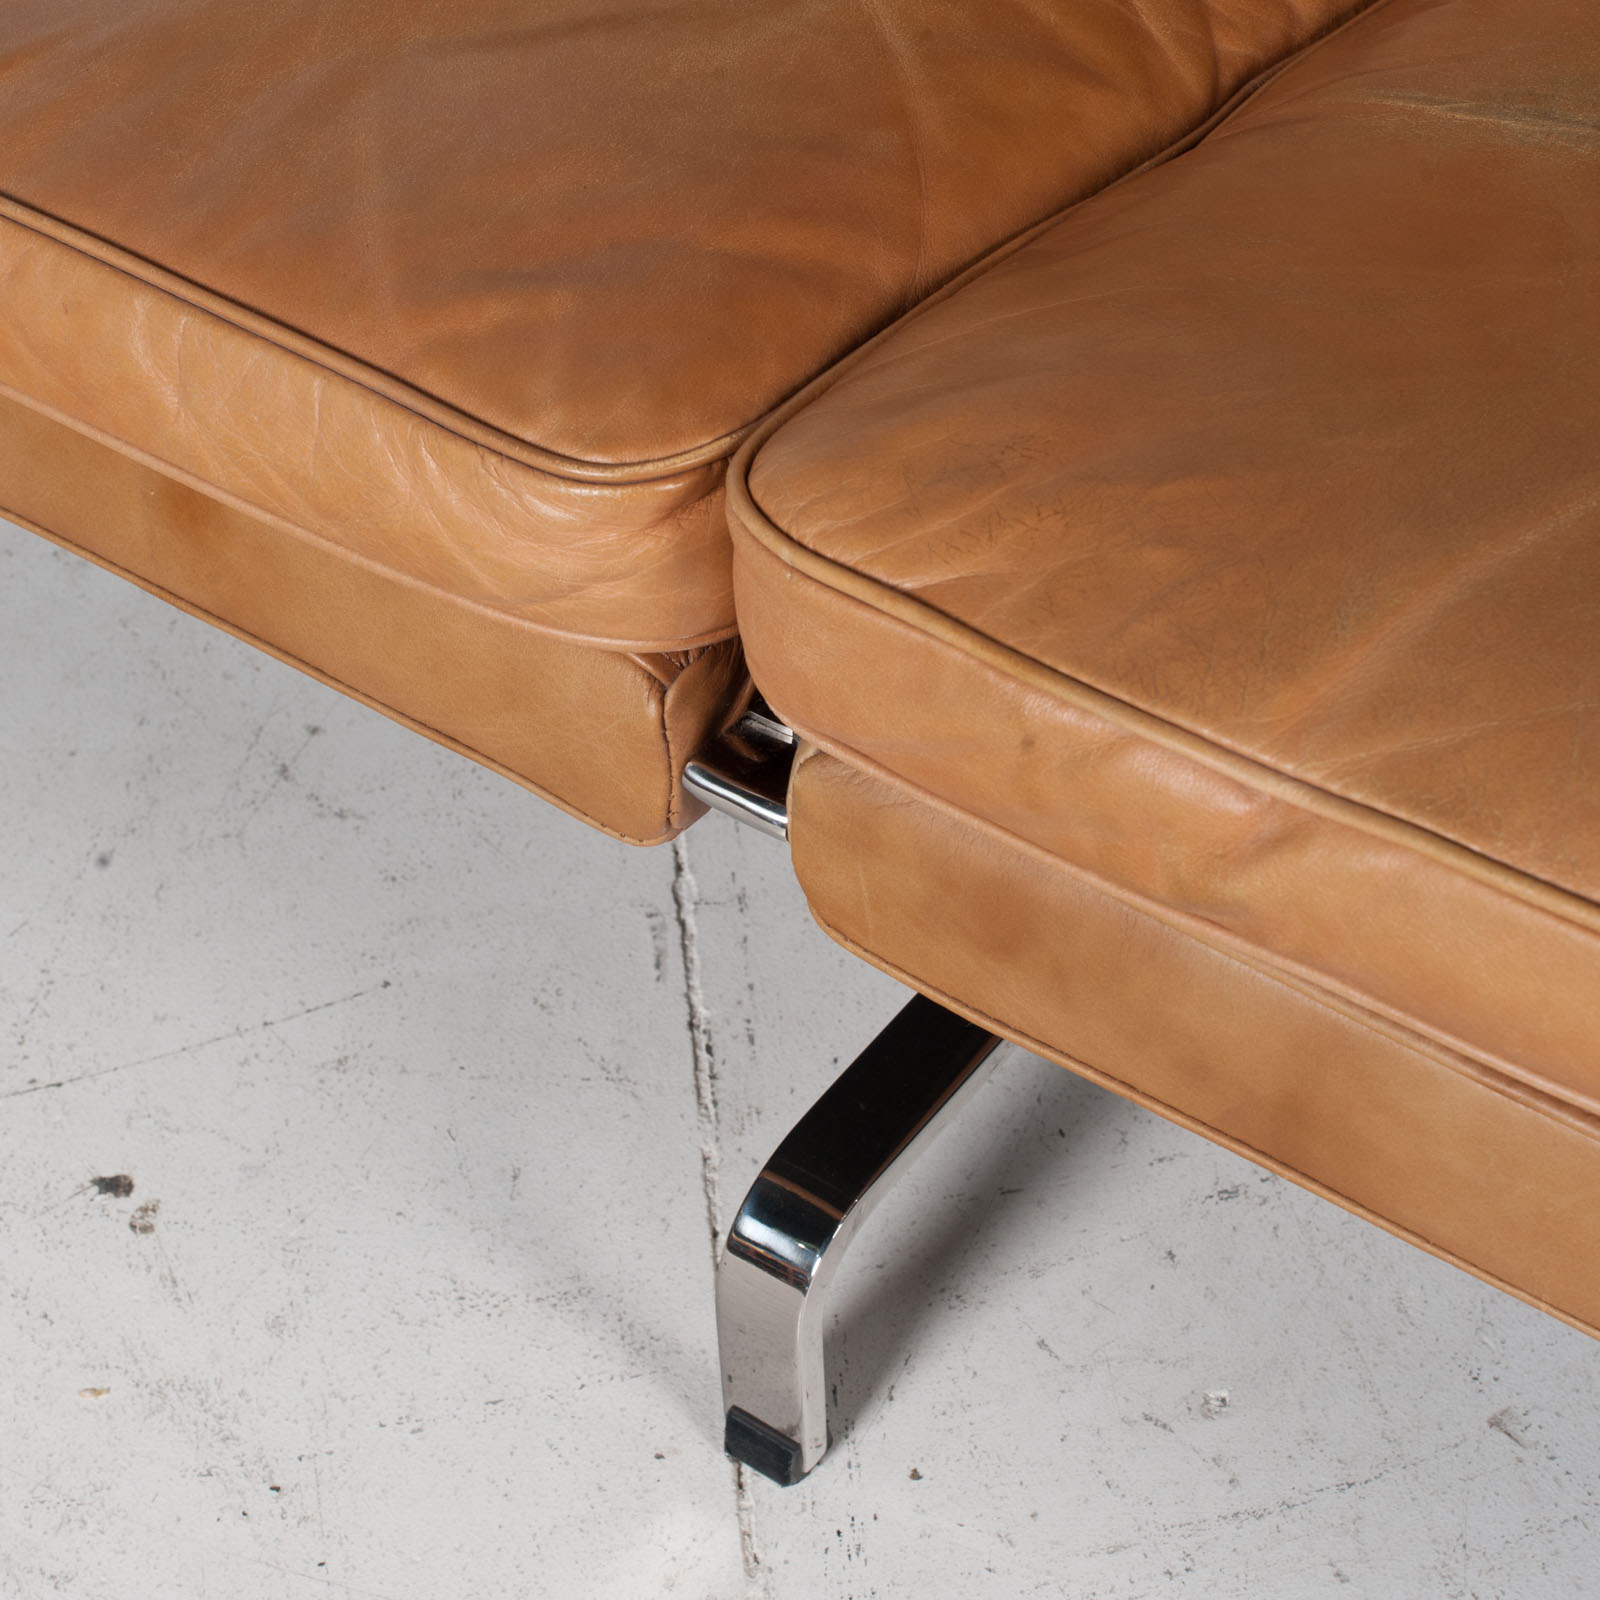 3 Seat Sofa By Poul Kjaerholm For Ejvind Kold Christensen In Tan Leather And Chrome, 1960s, Denmark 7